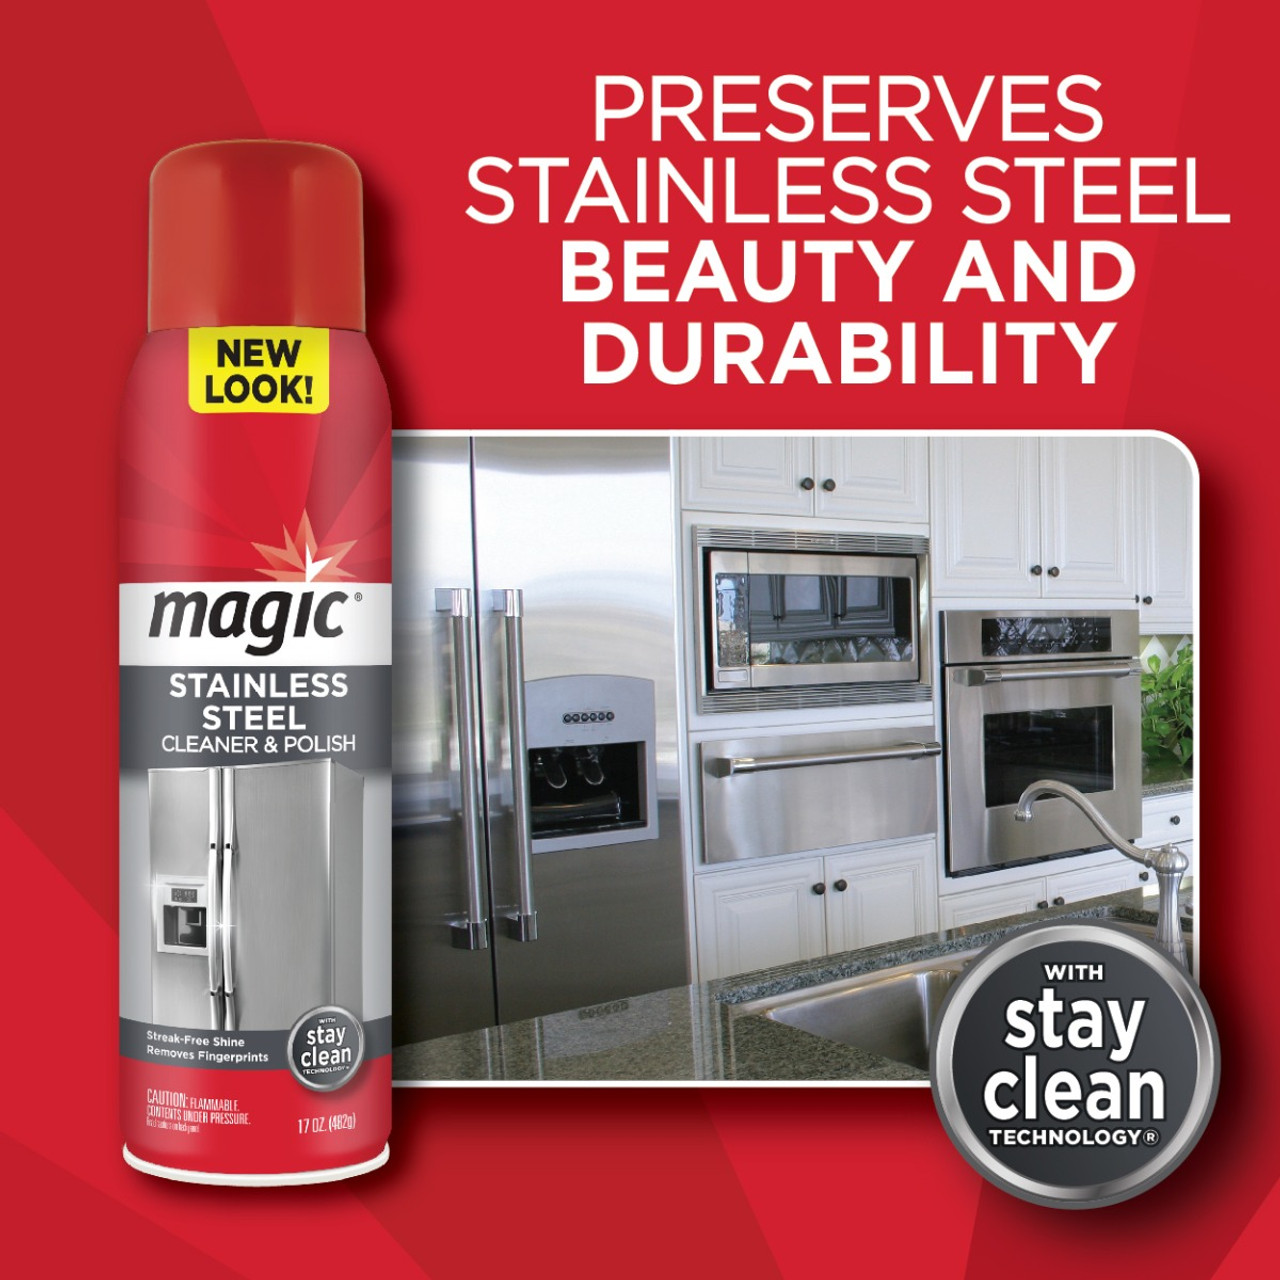 Magic - Stainless Steel Cleaner & Polish (17oz. Aerosol) - Preserves stainless steel beauty and durability